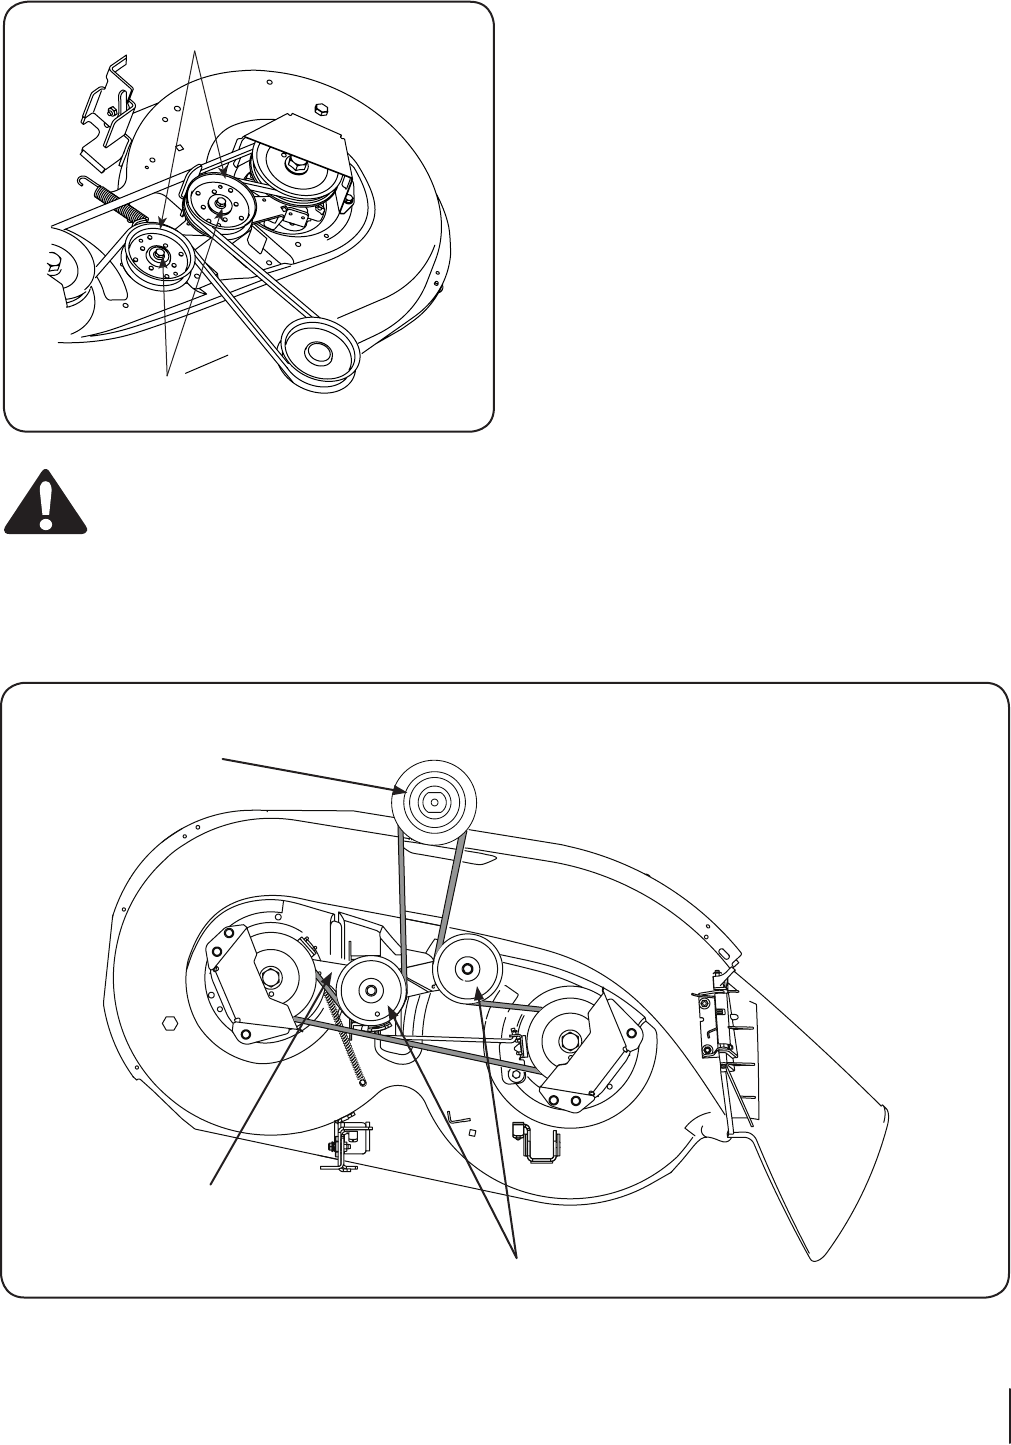 Page 51 of Troy-Bilt Lawn Mower Pony User Guide